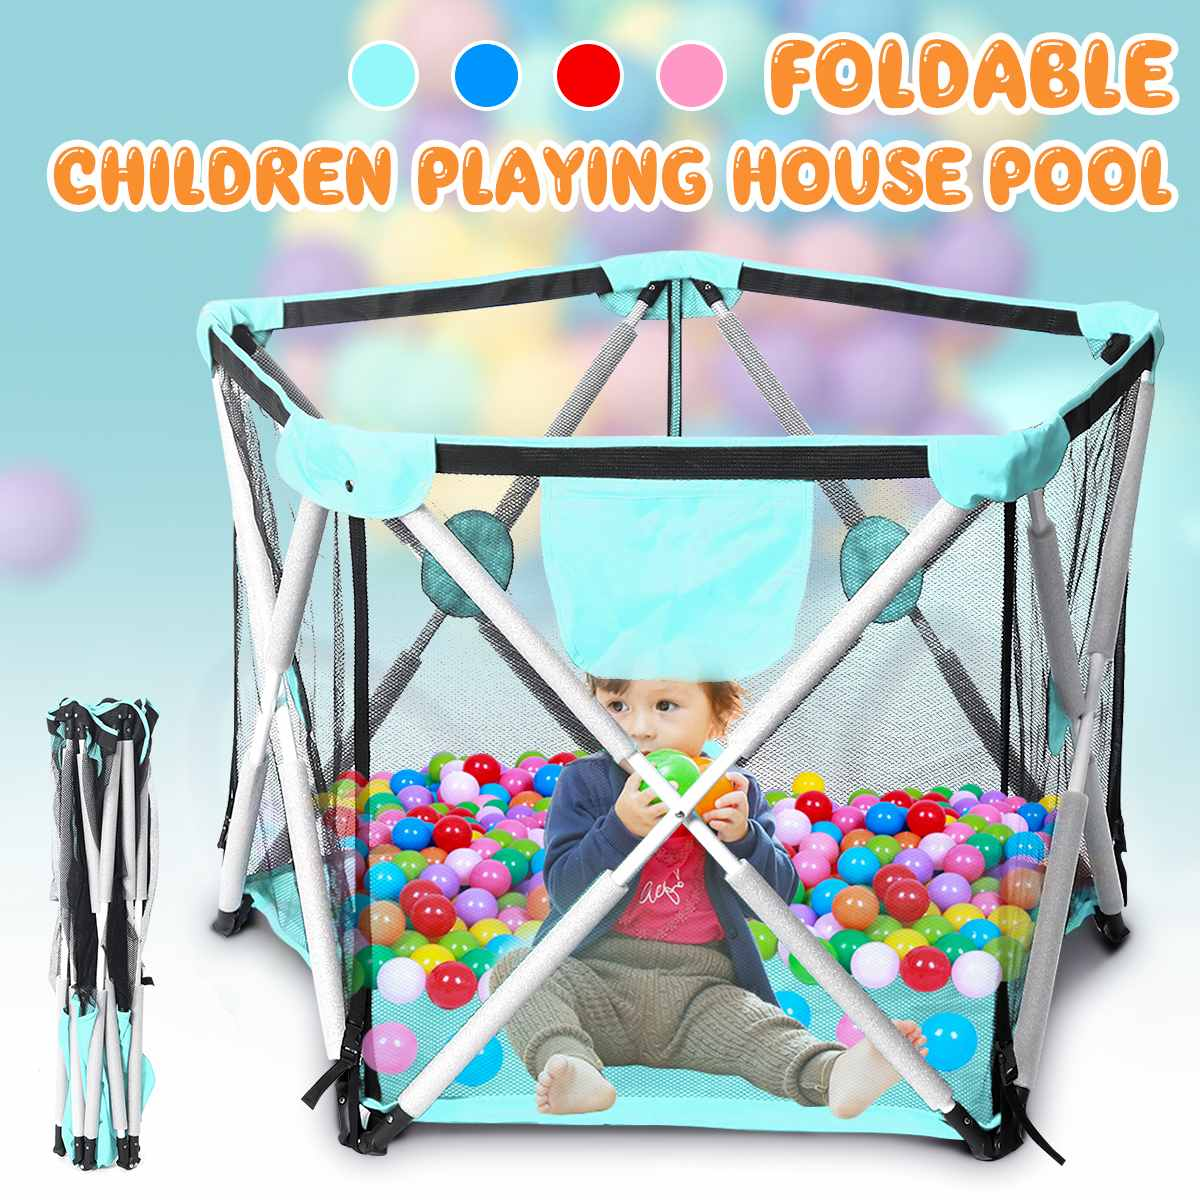 115x78cm Foldable And Easy To Collect Playpen For Children Indoor Baby Safety Barrier Fence Kids Tent Dry Ocean Balls Play Pool